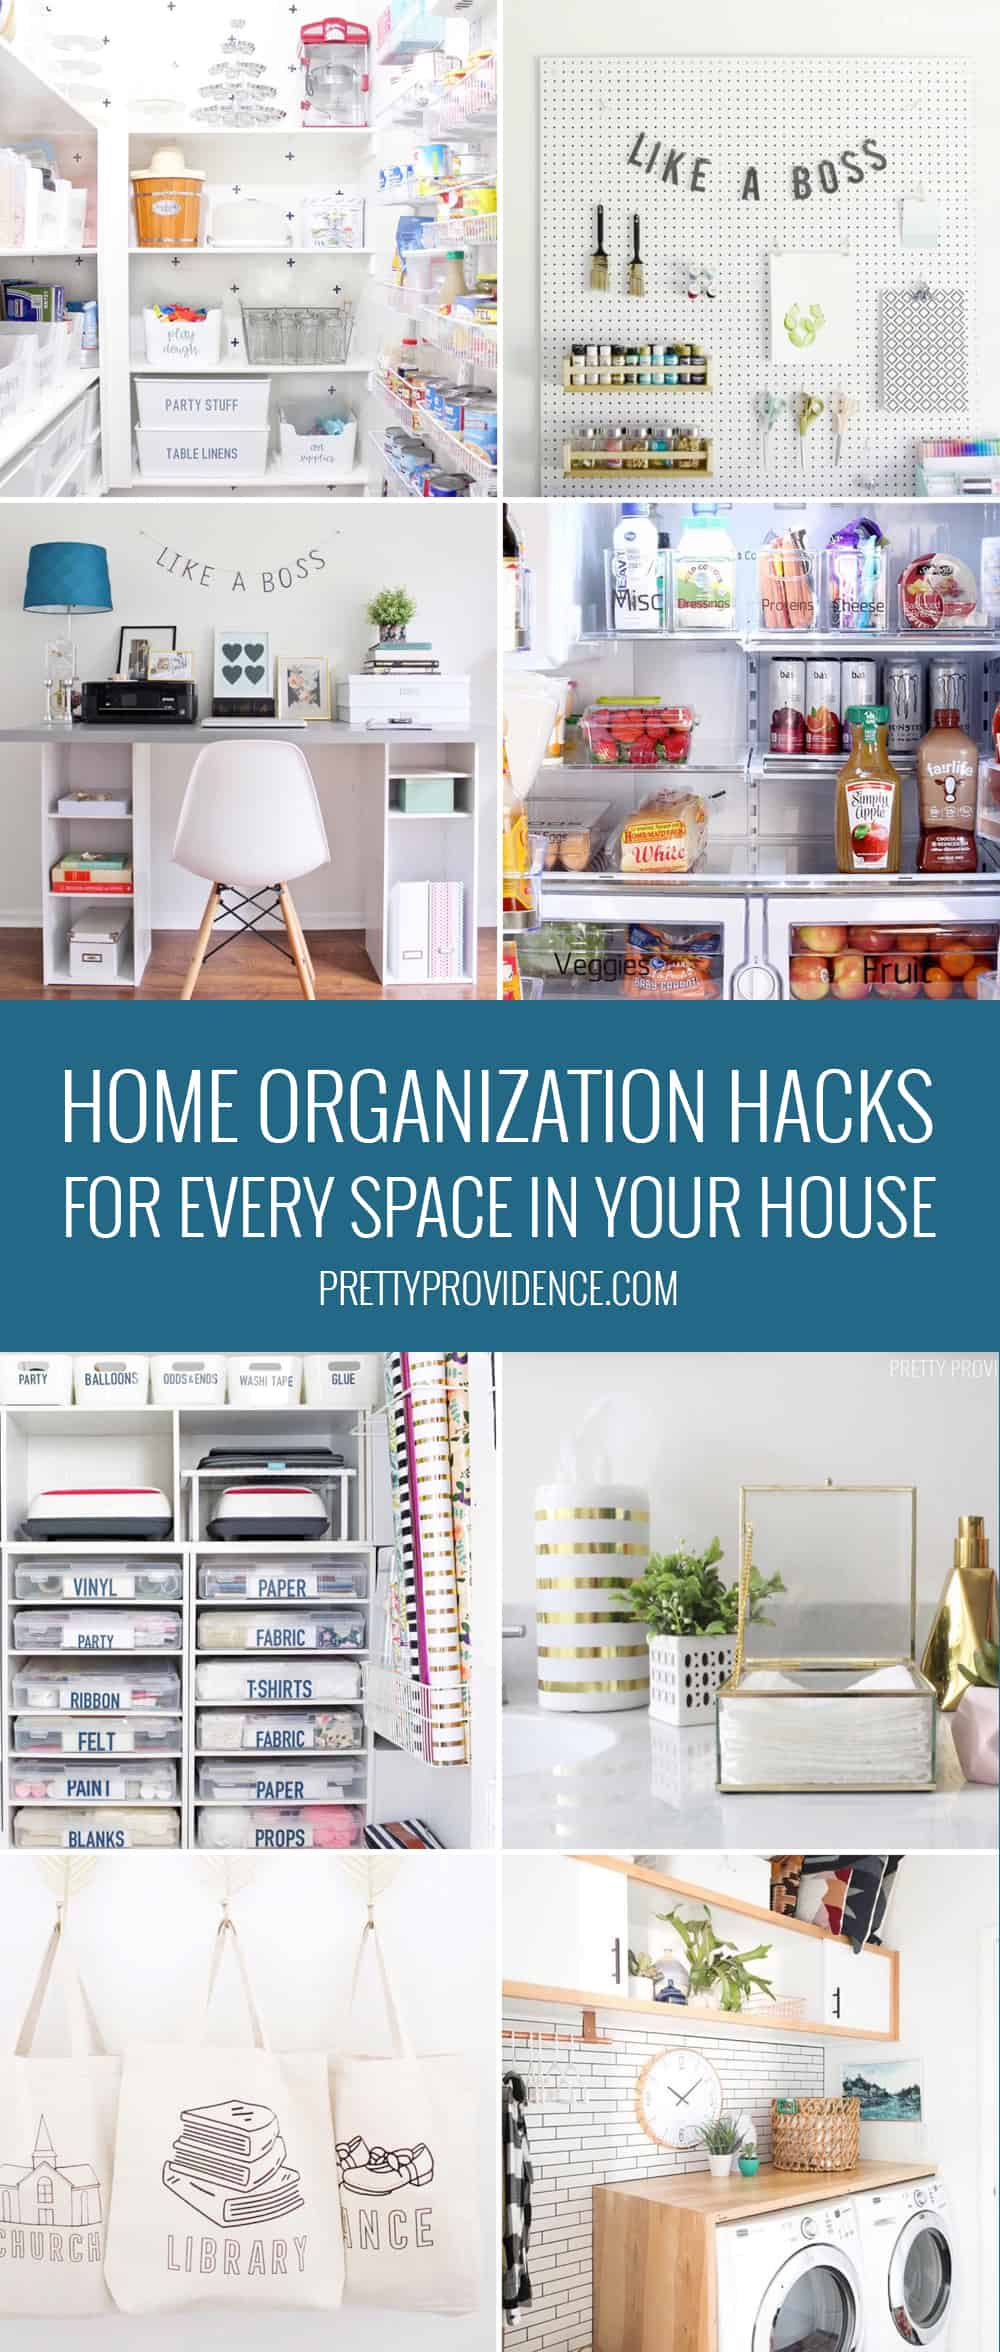 Home organization is so important! If you need organizing ideas look no further! These home organization hacks, tips and tricks will whip you into shape in no time!